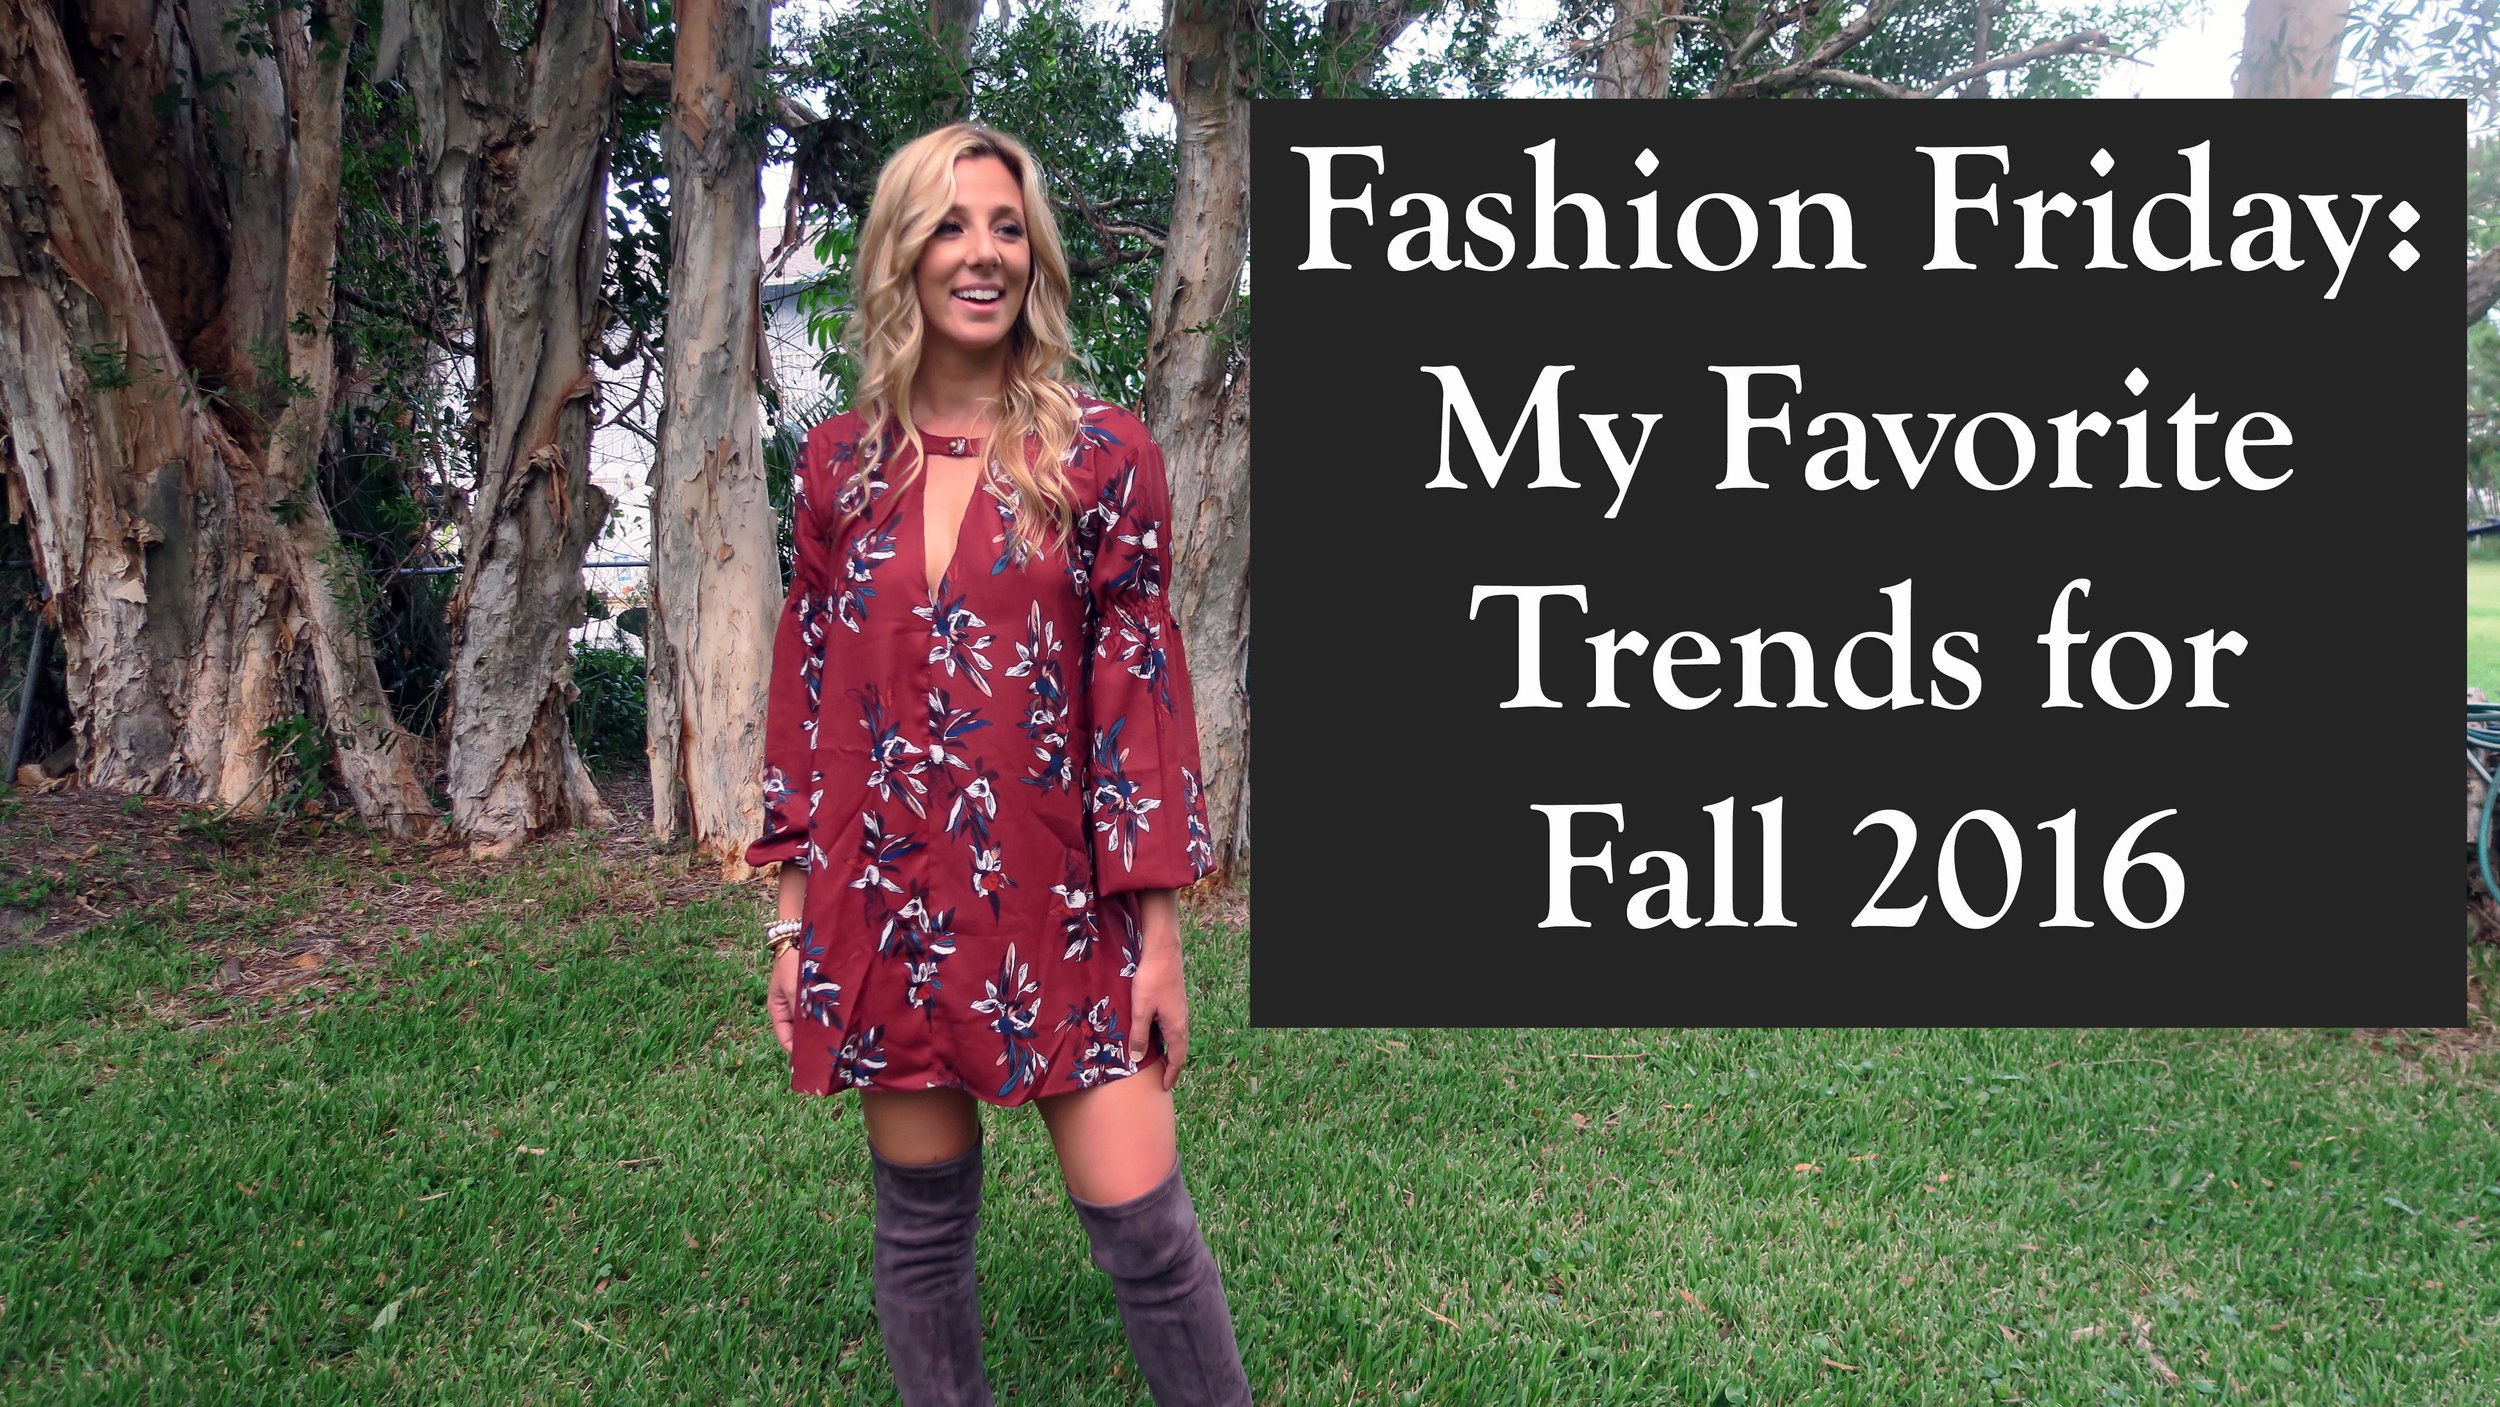 Fashion Friday | My Favorite Fall 2016 Trend